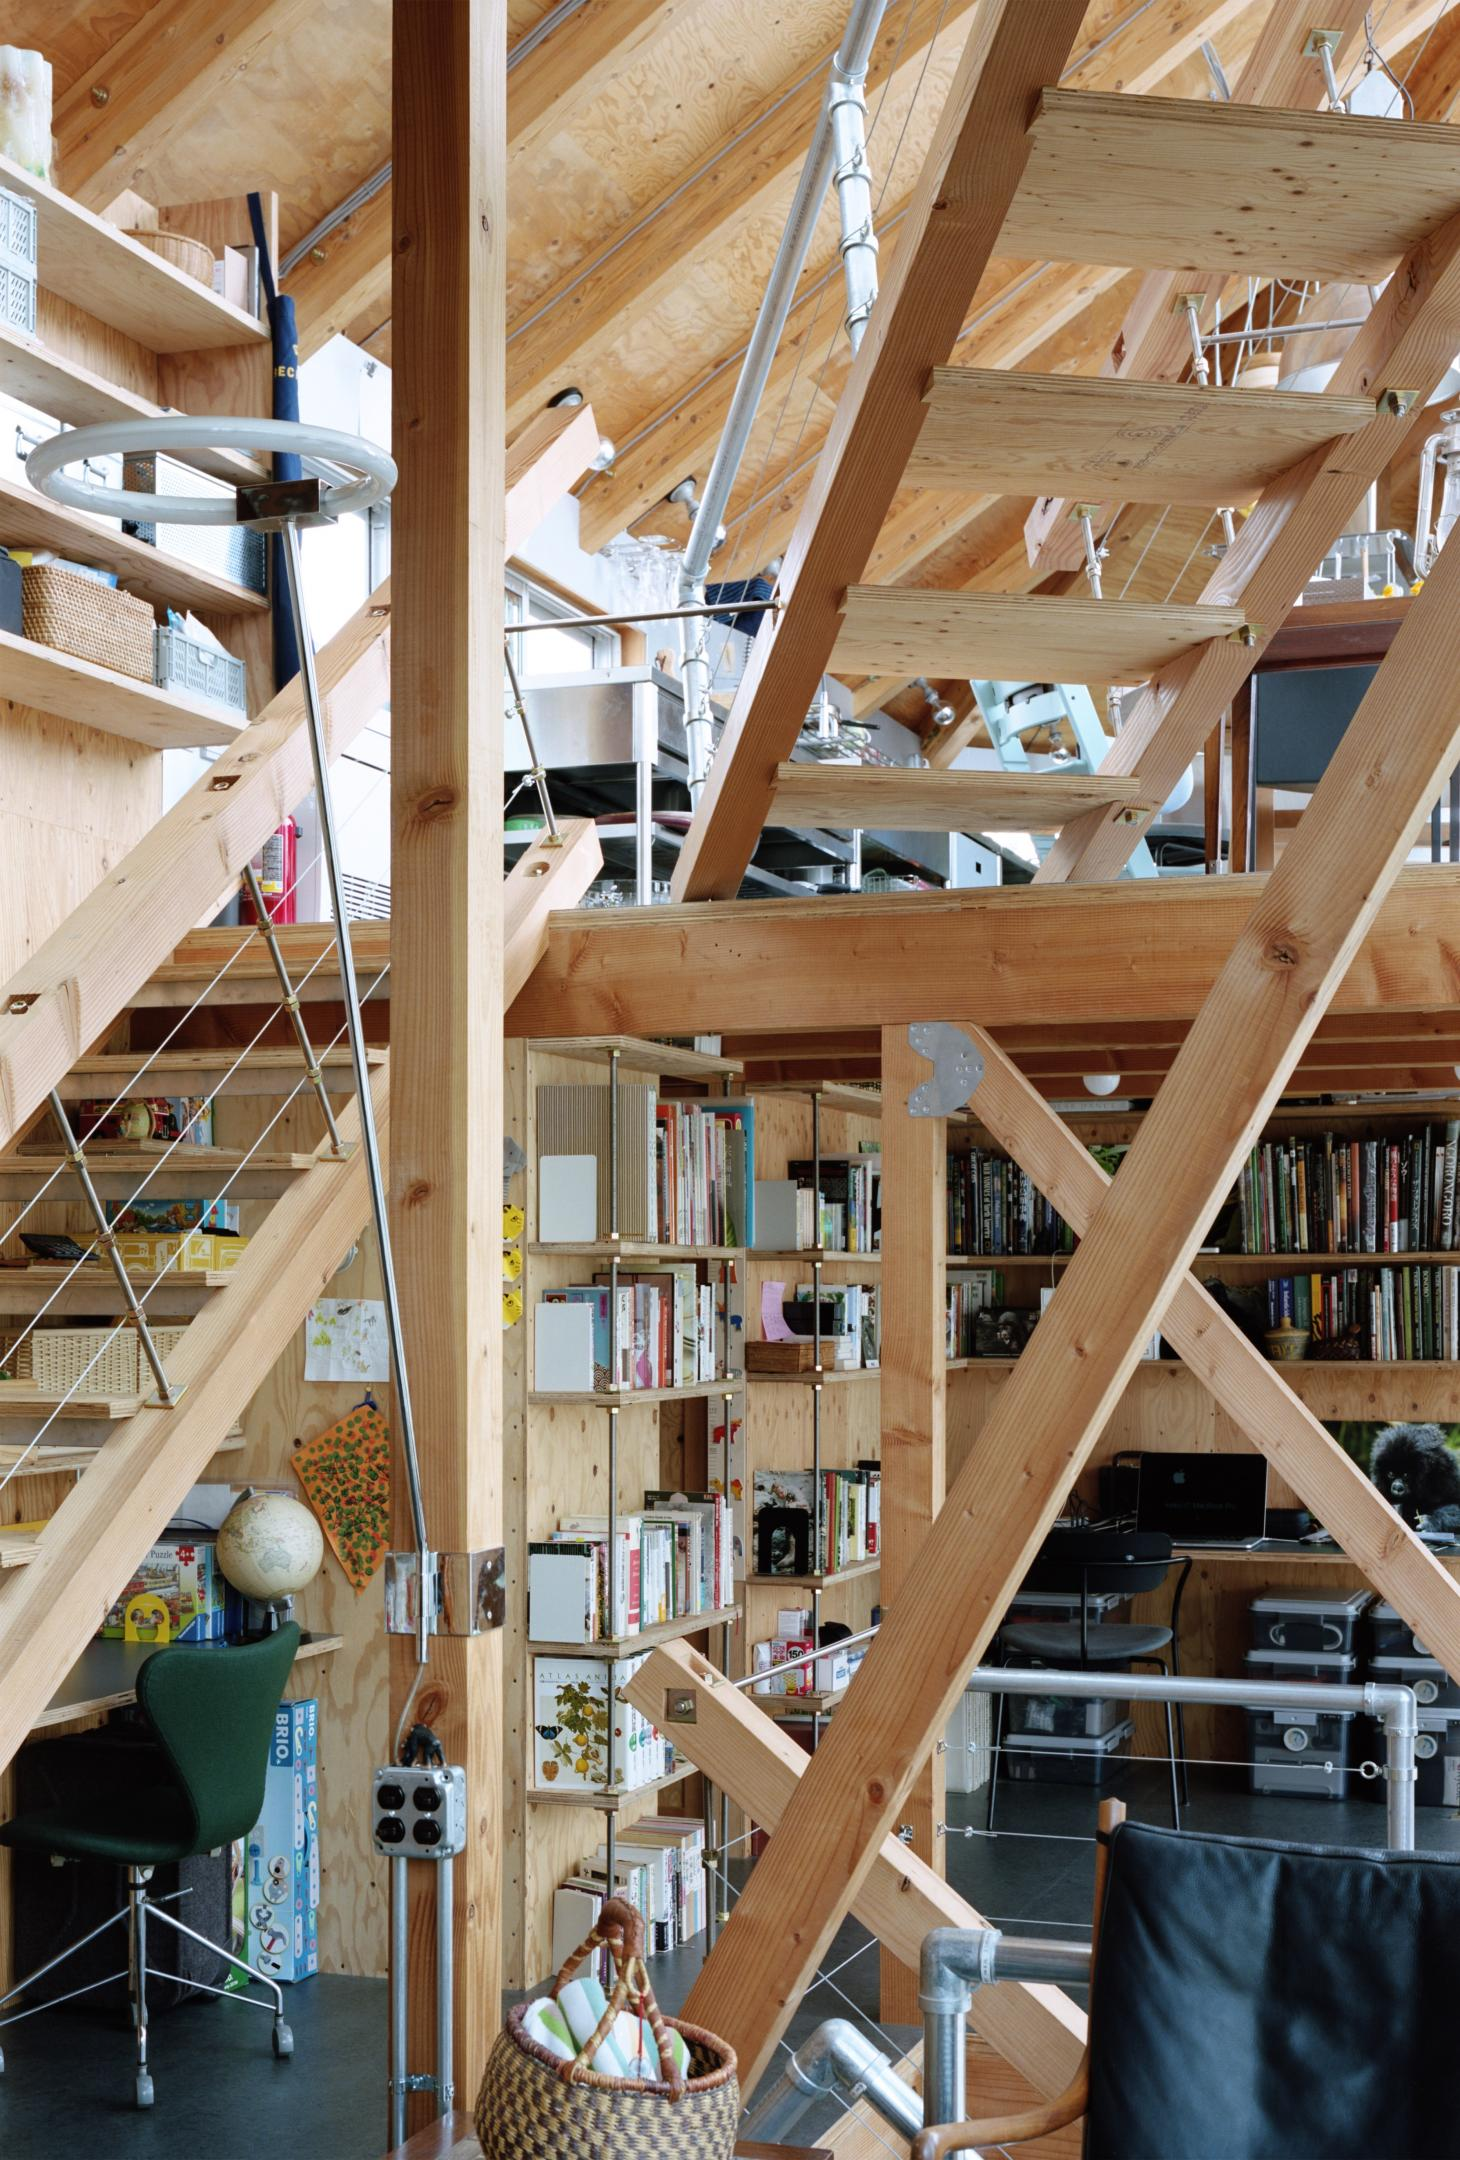 interior with wooden structure at Daita2019, a Japanese house